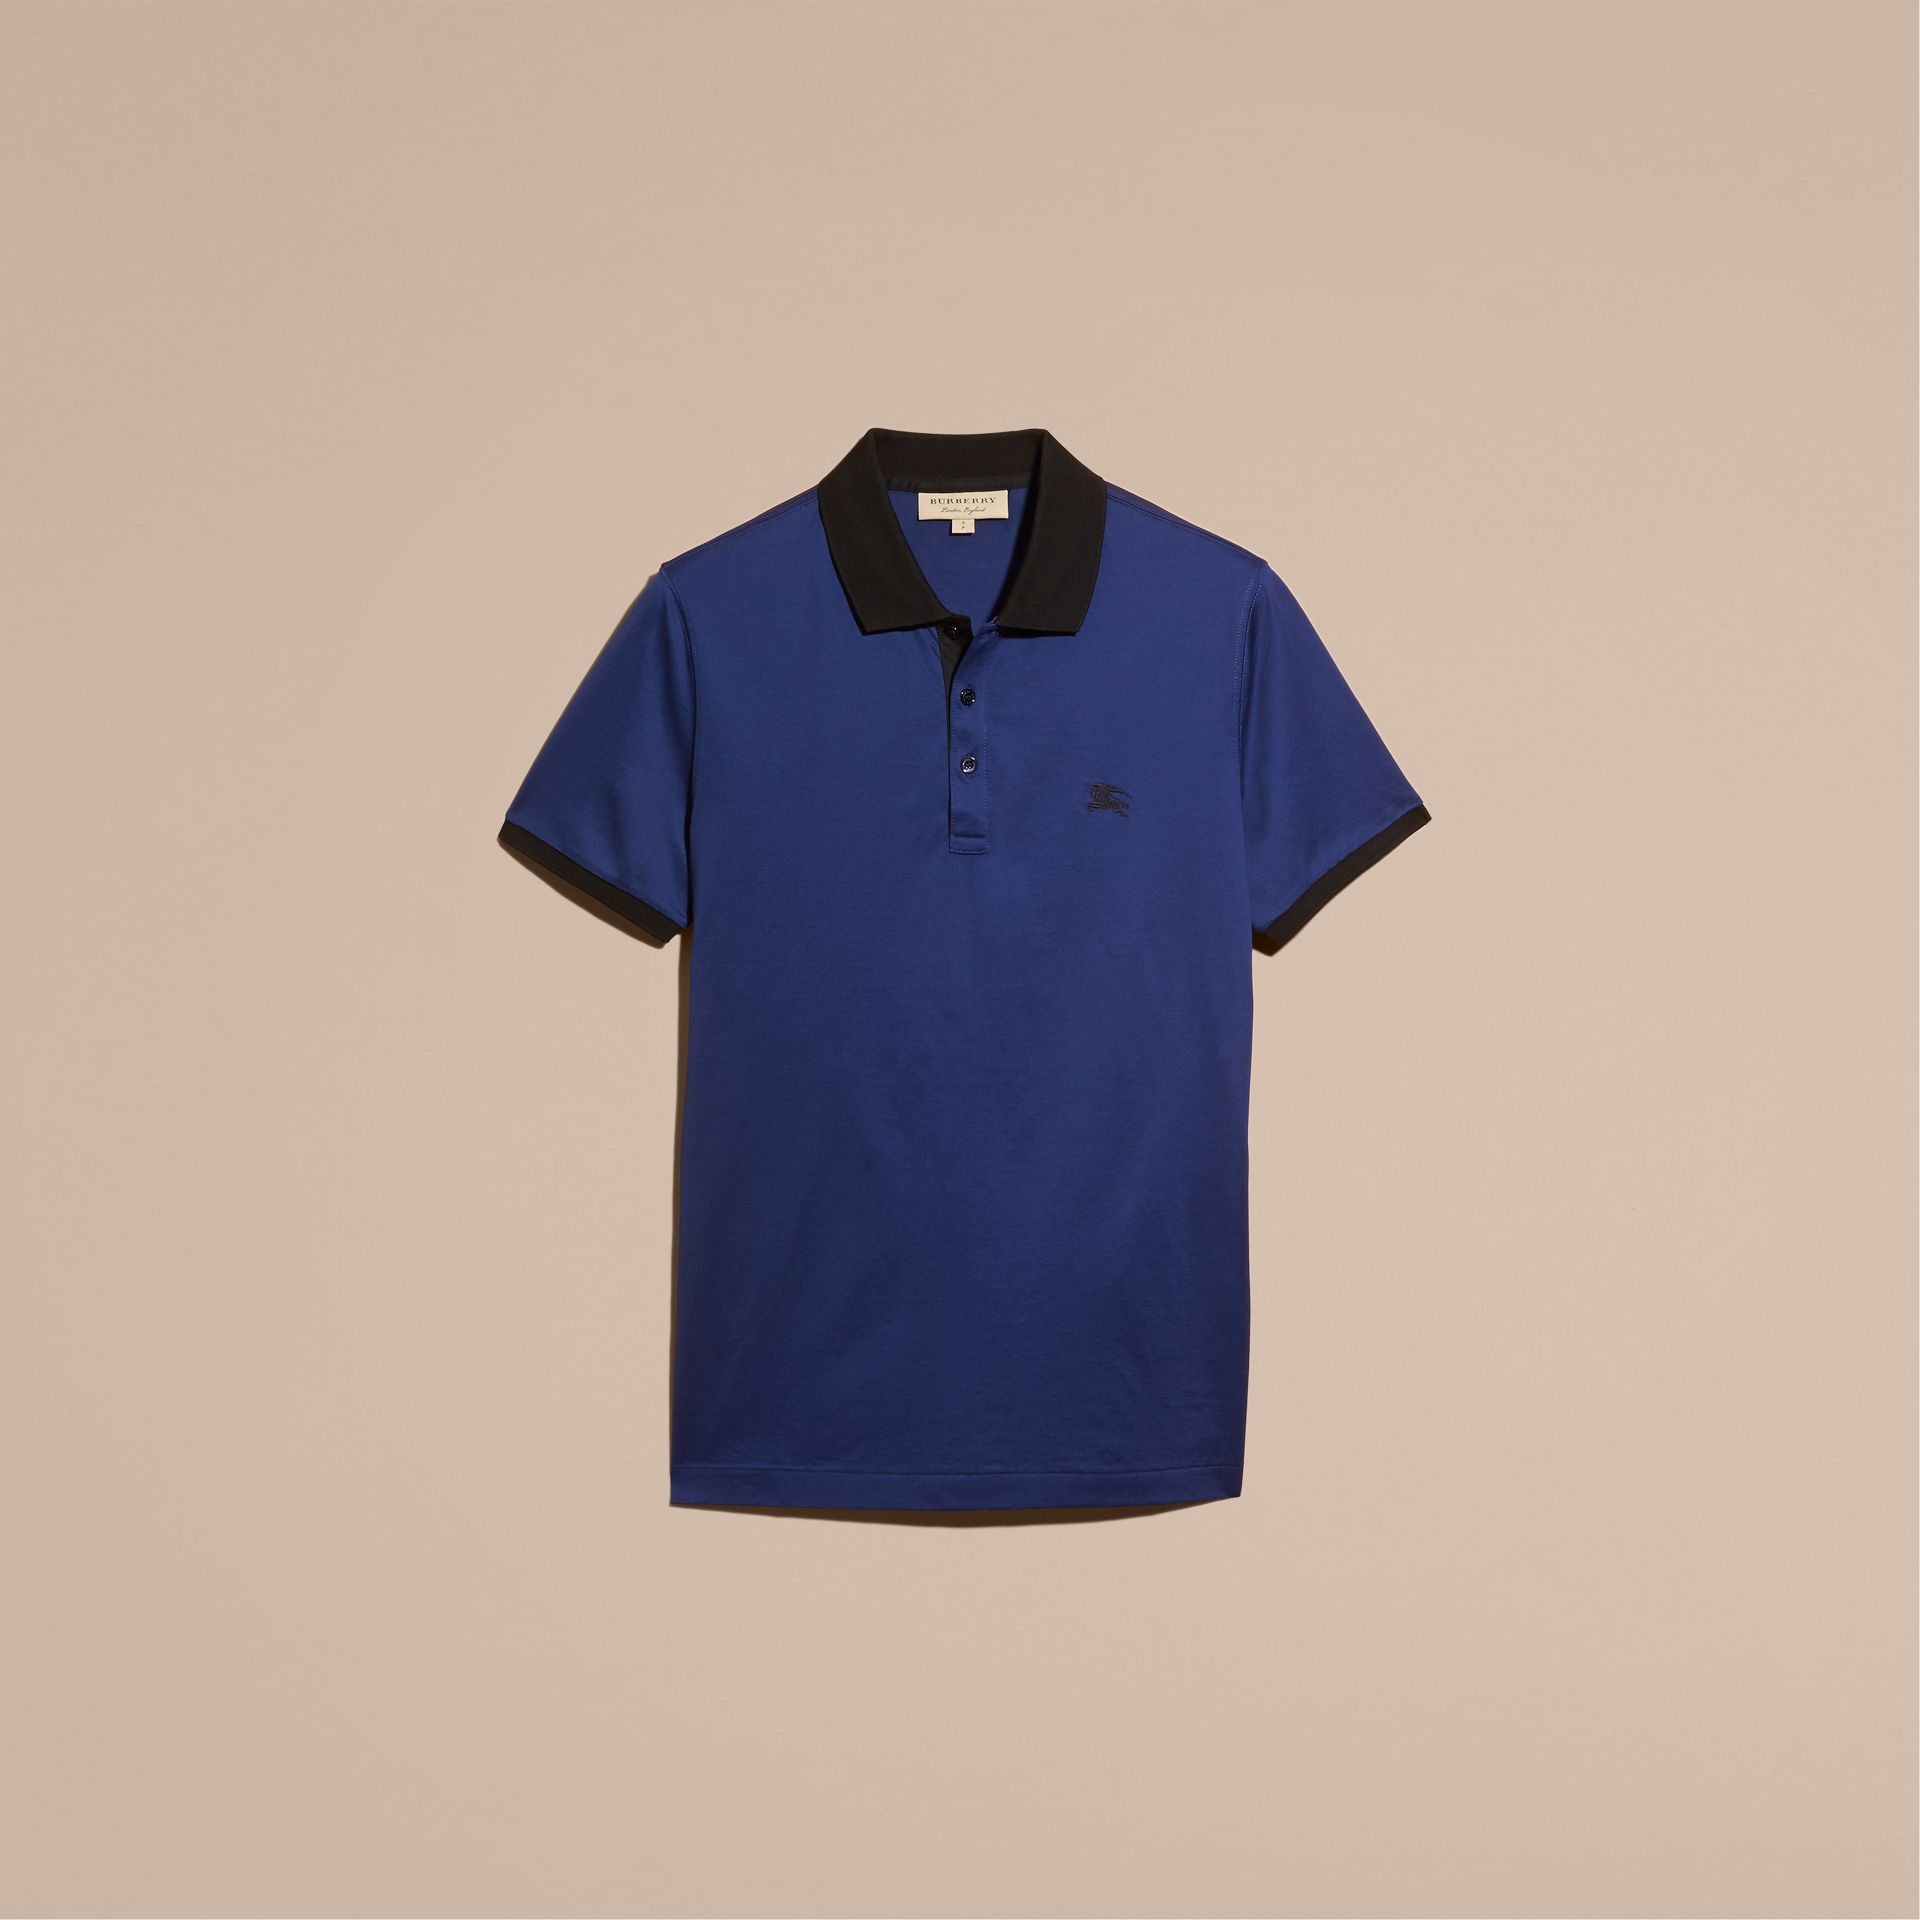 Indigo Fitted Cotton Polo Shirt with Tonal Trim Indigo - gallery image 4